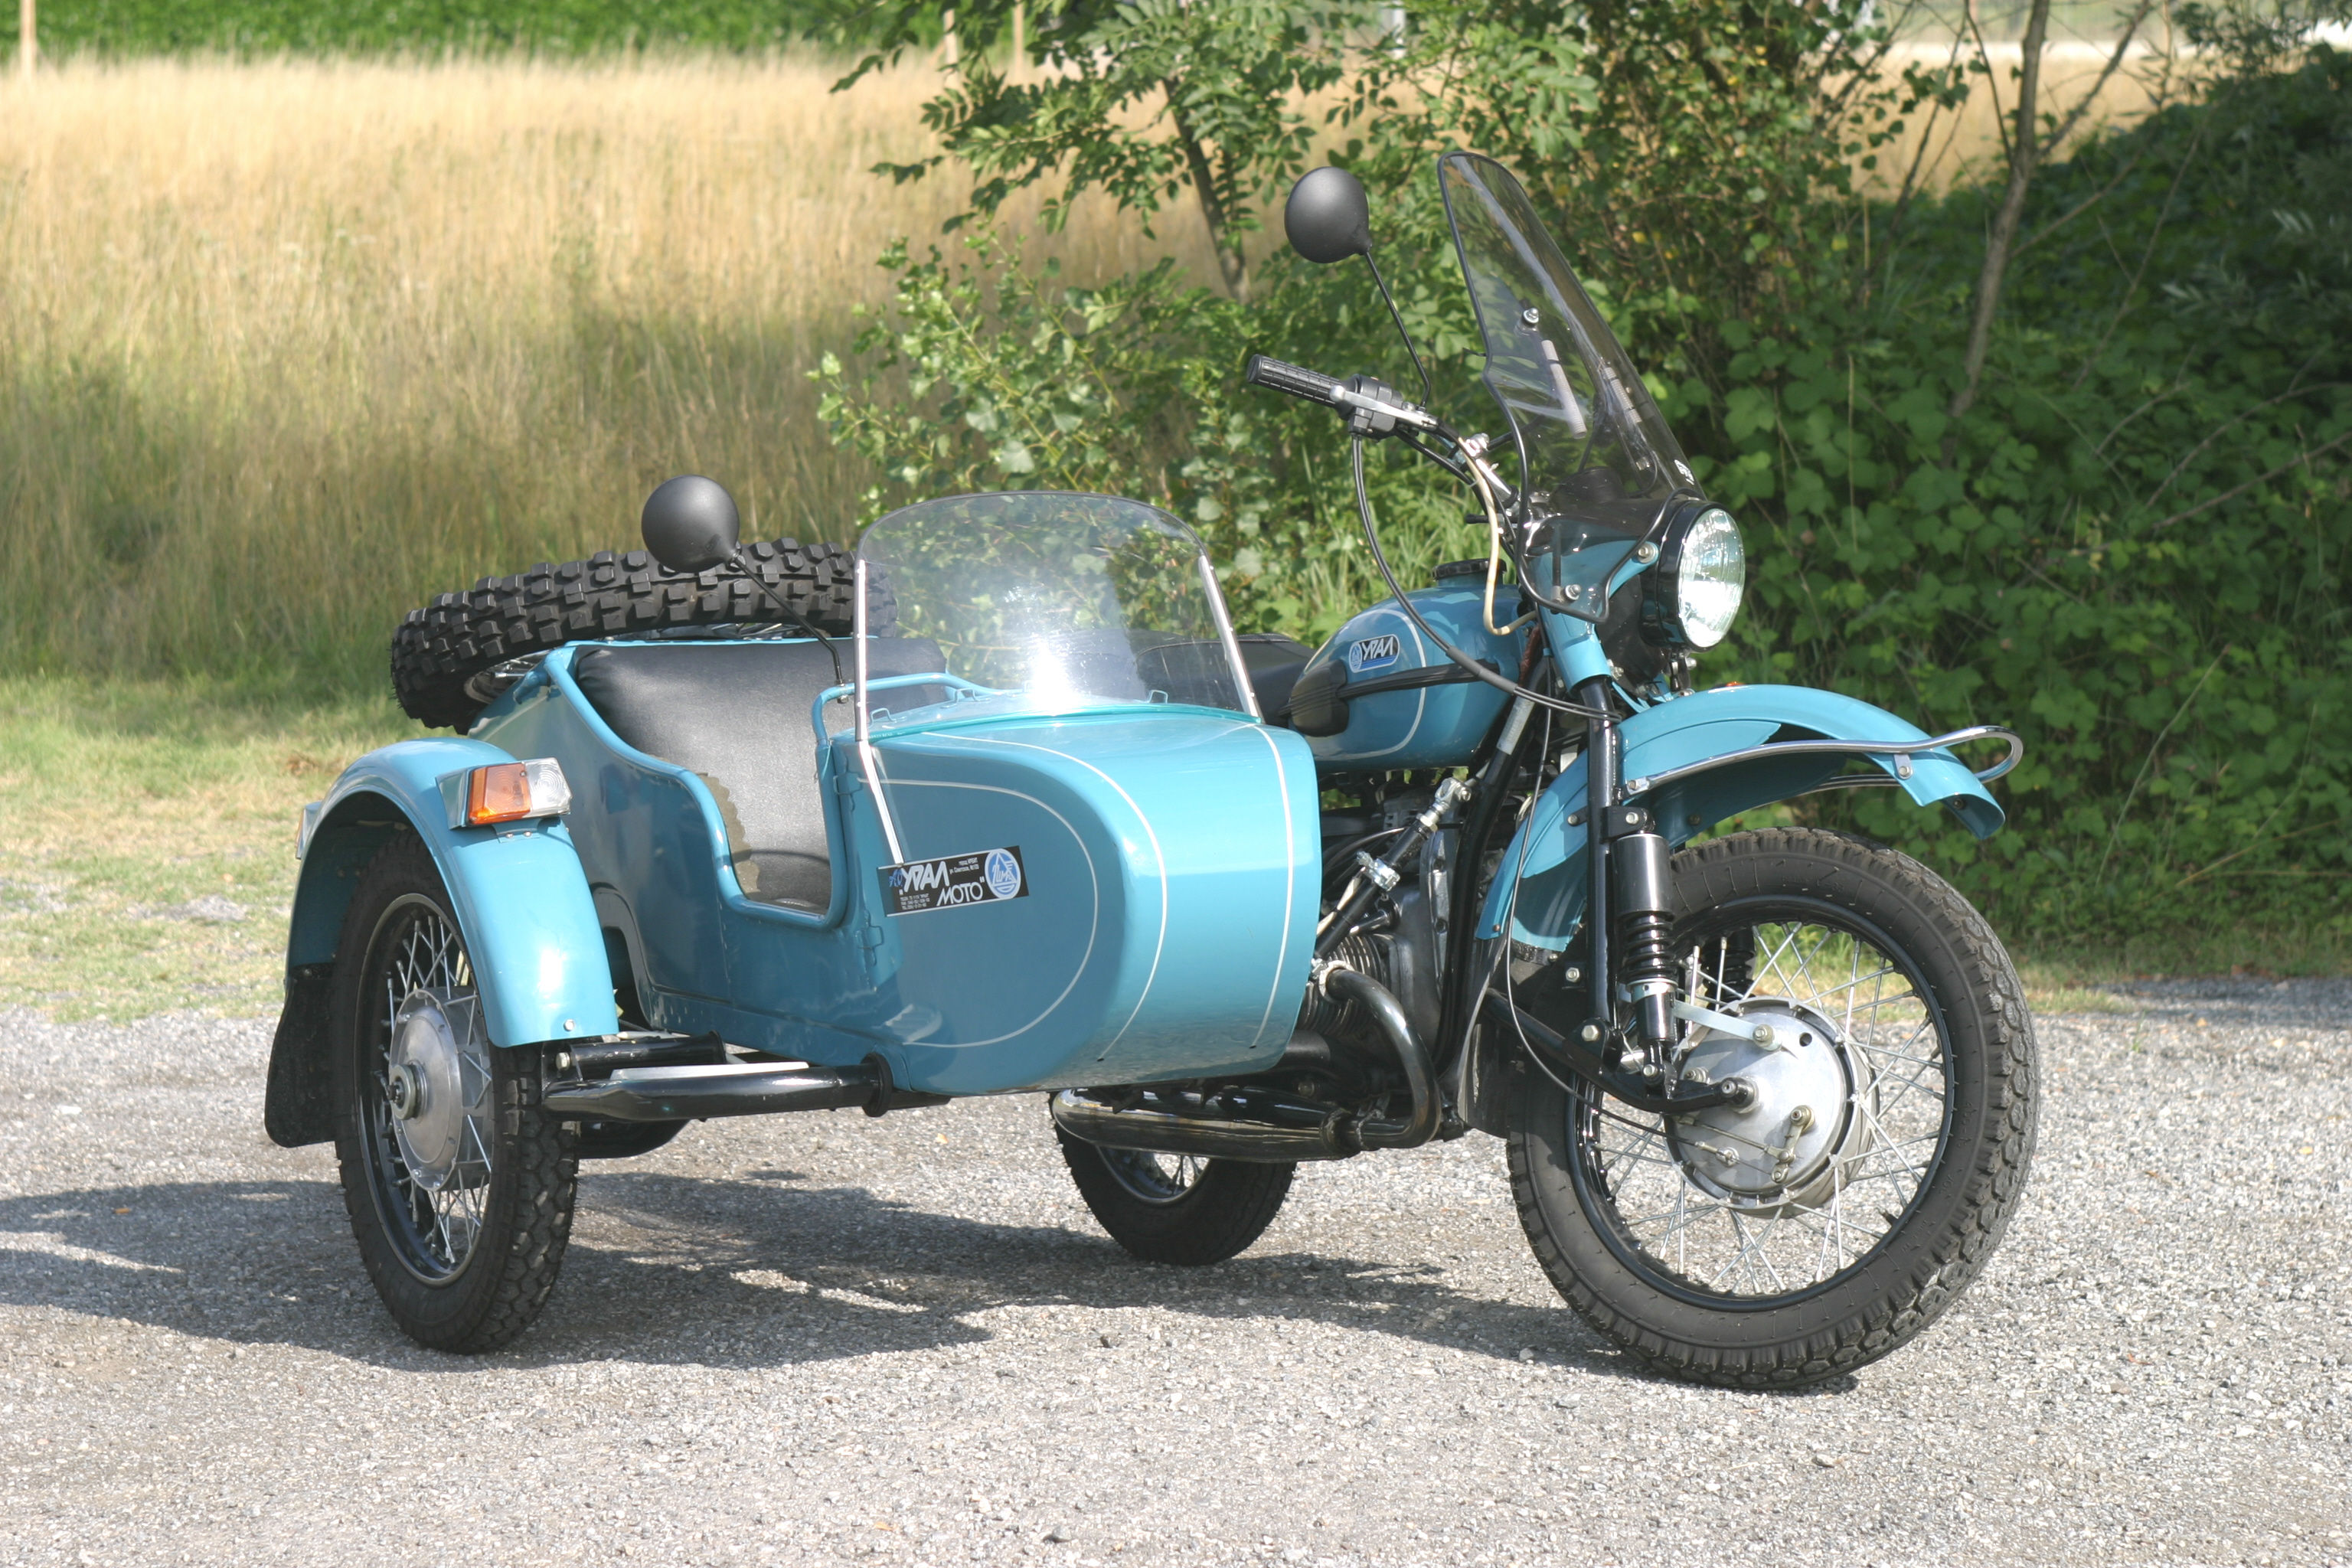 Ural M 66 with sidecar 1974 images #127371